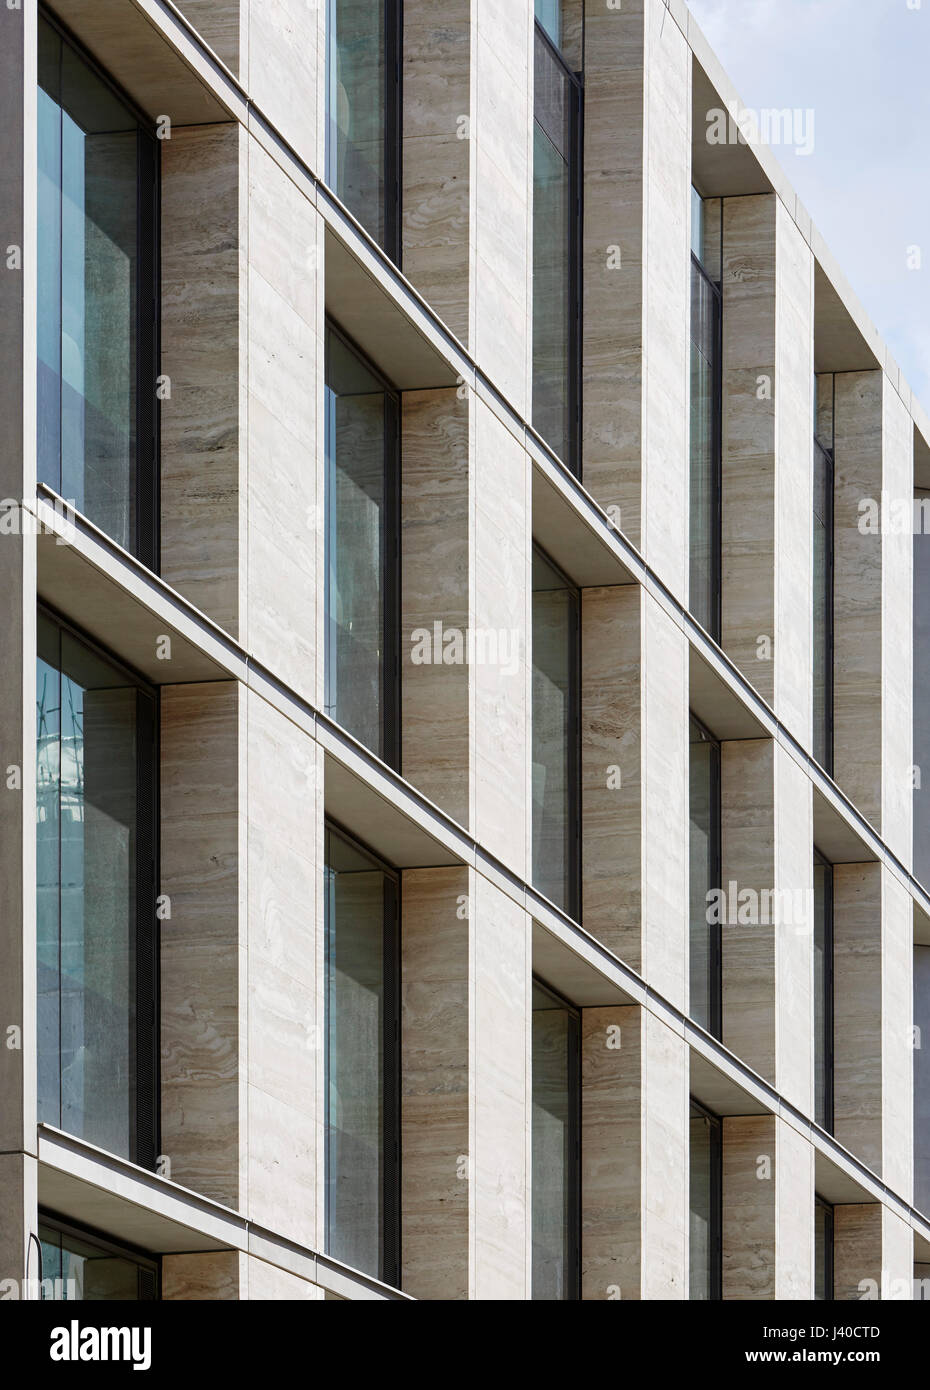 stock photo travertine facade with glazing in perspective chancery lane london united kingdom architect bennetts associates architects 2015 - Travertine Hotel 2015